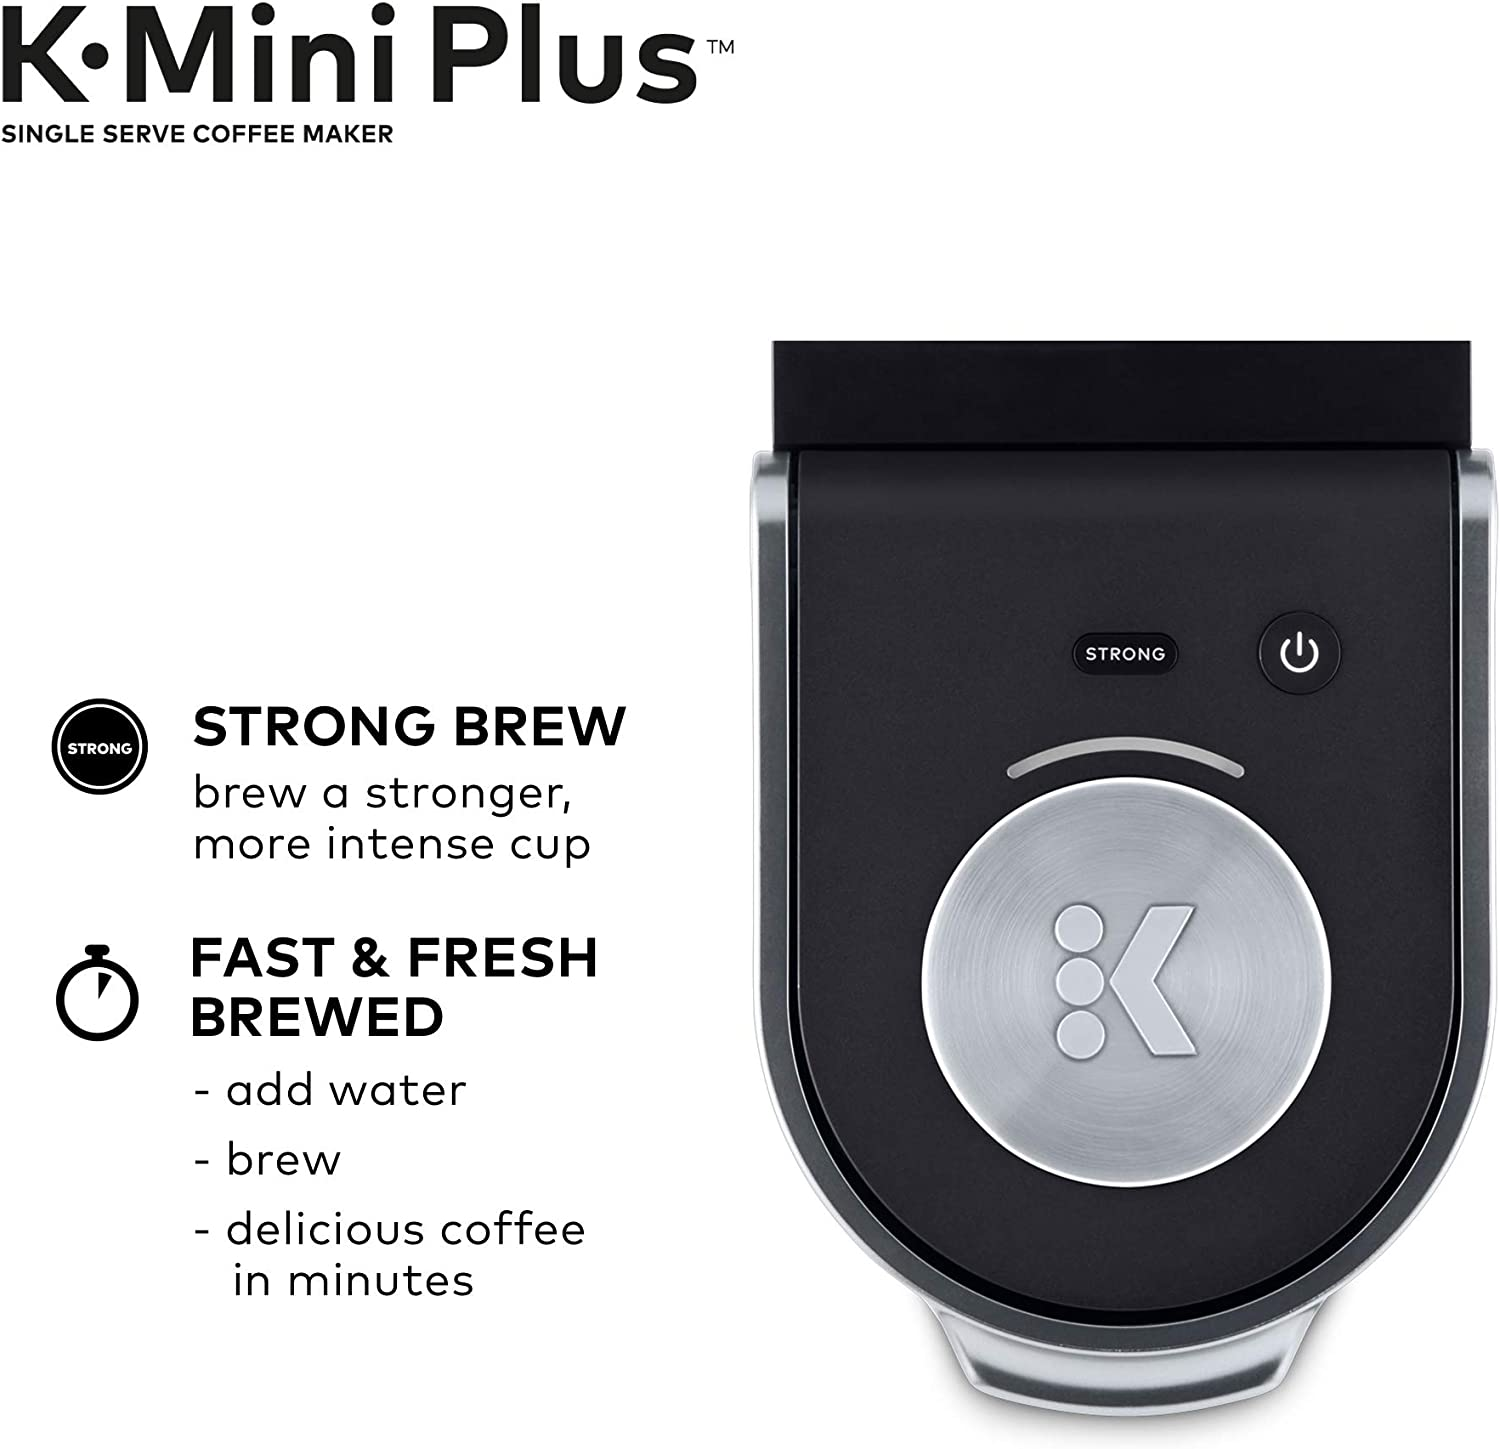 Keurig K-Mini Plus Coffee Maker, Single Serve K-Cup Pod Coffee Brewer, Comes With 6 to 12 Oz. Brew Size, K-Cup Pod Storage, and Travel Mug Friendly, Black: Kitchen & Dining